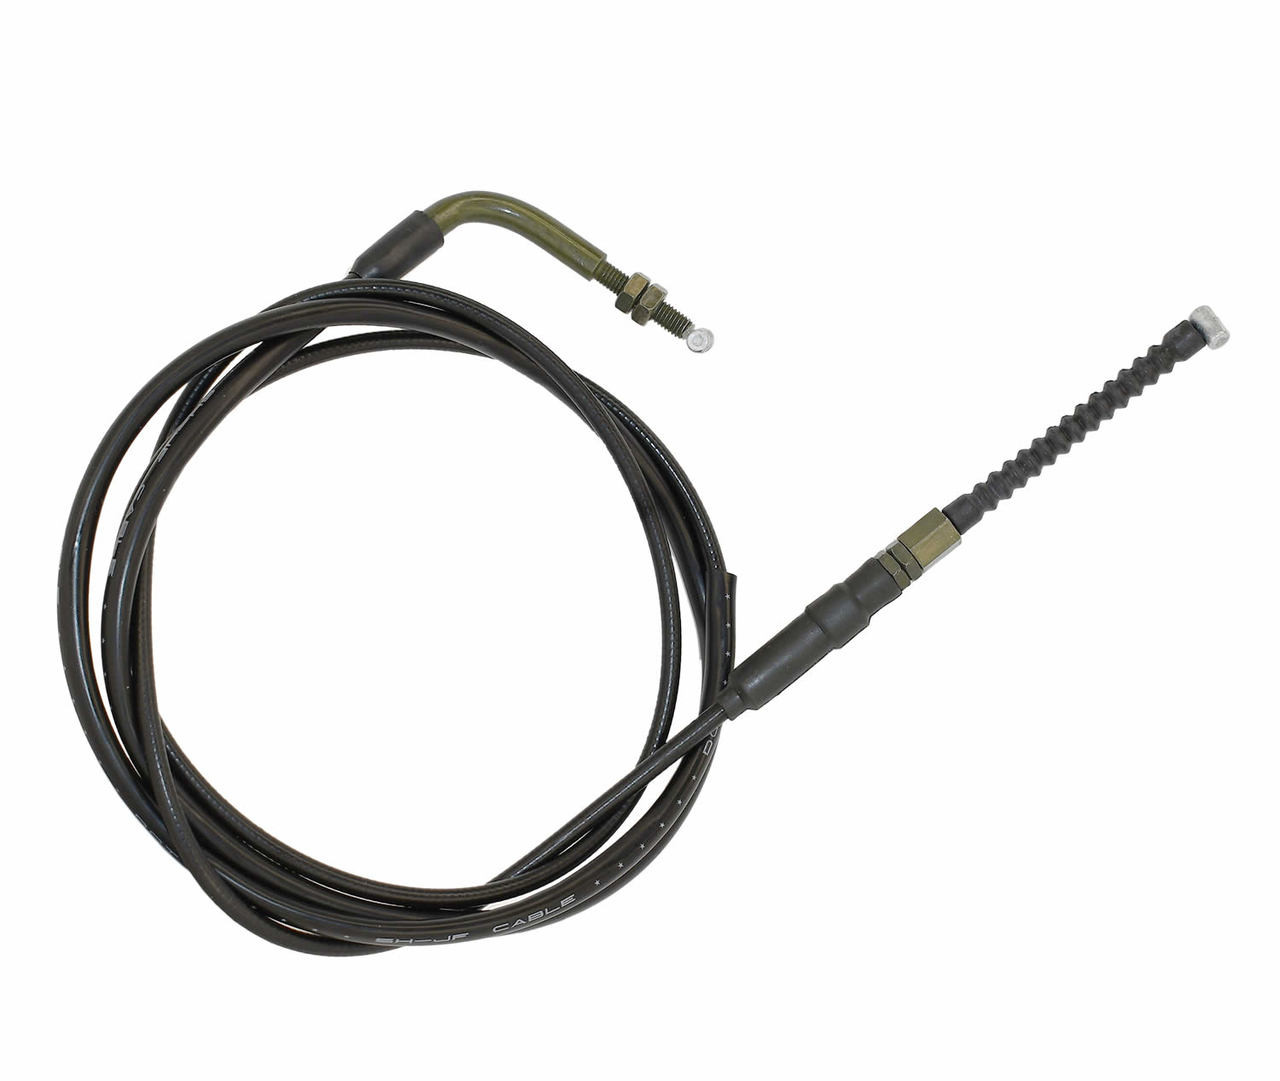 Trailmaster 300cc Throttle Cable